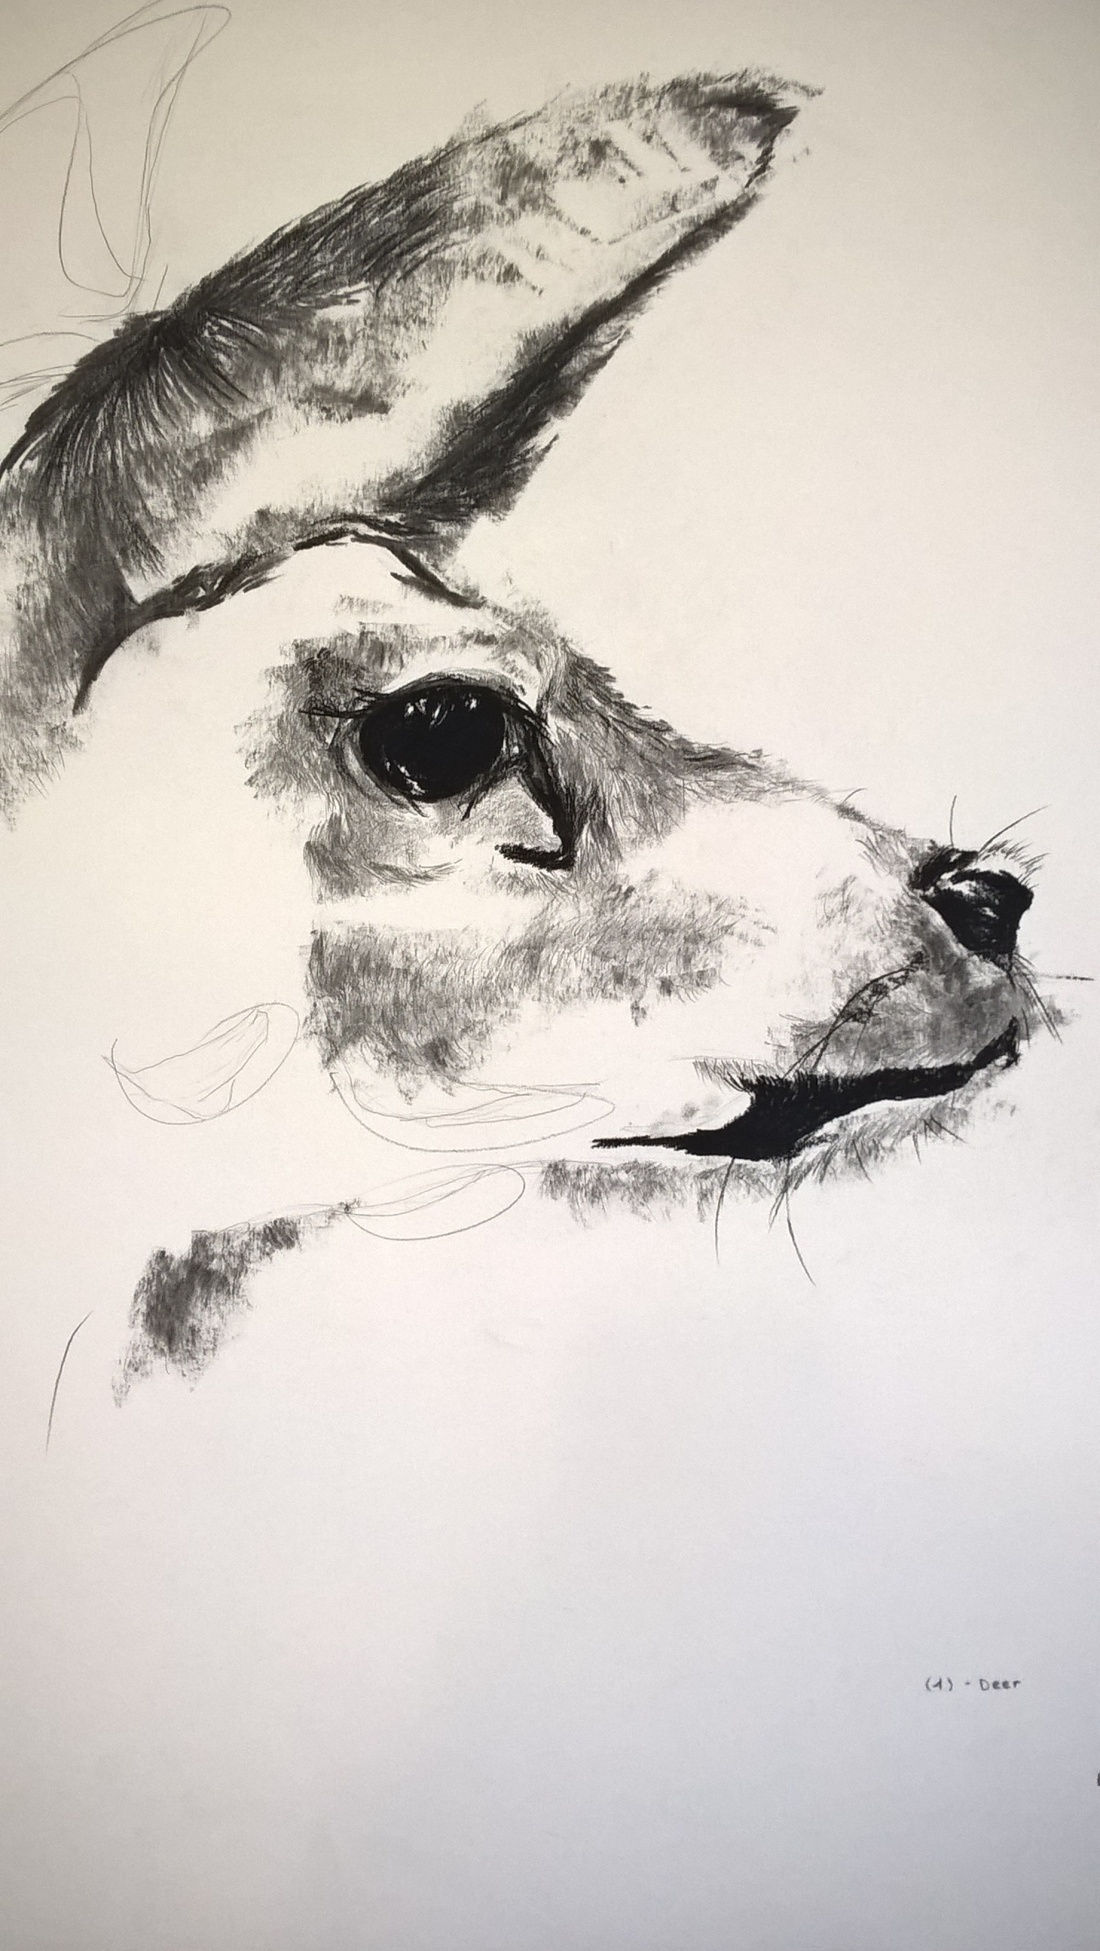 Unfinished- charcoal doe drawing on A3 paper. Small grain